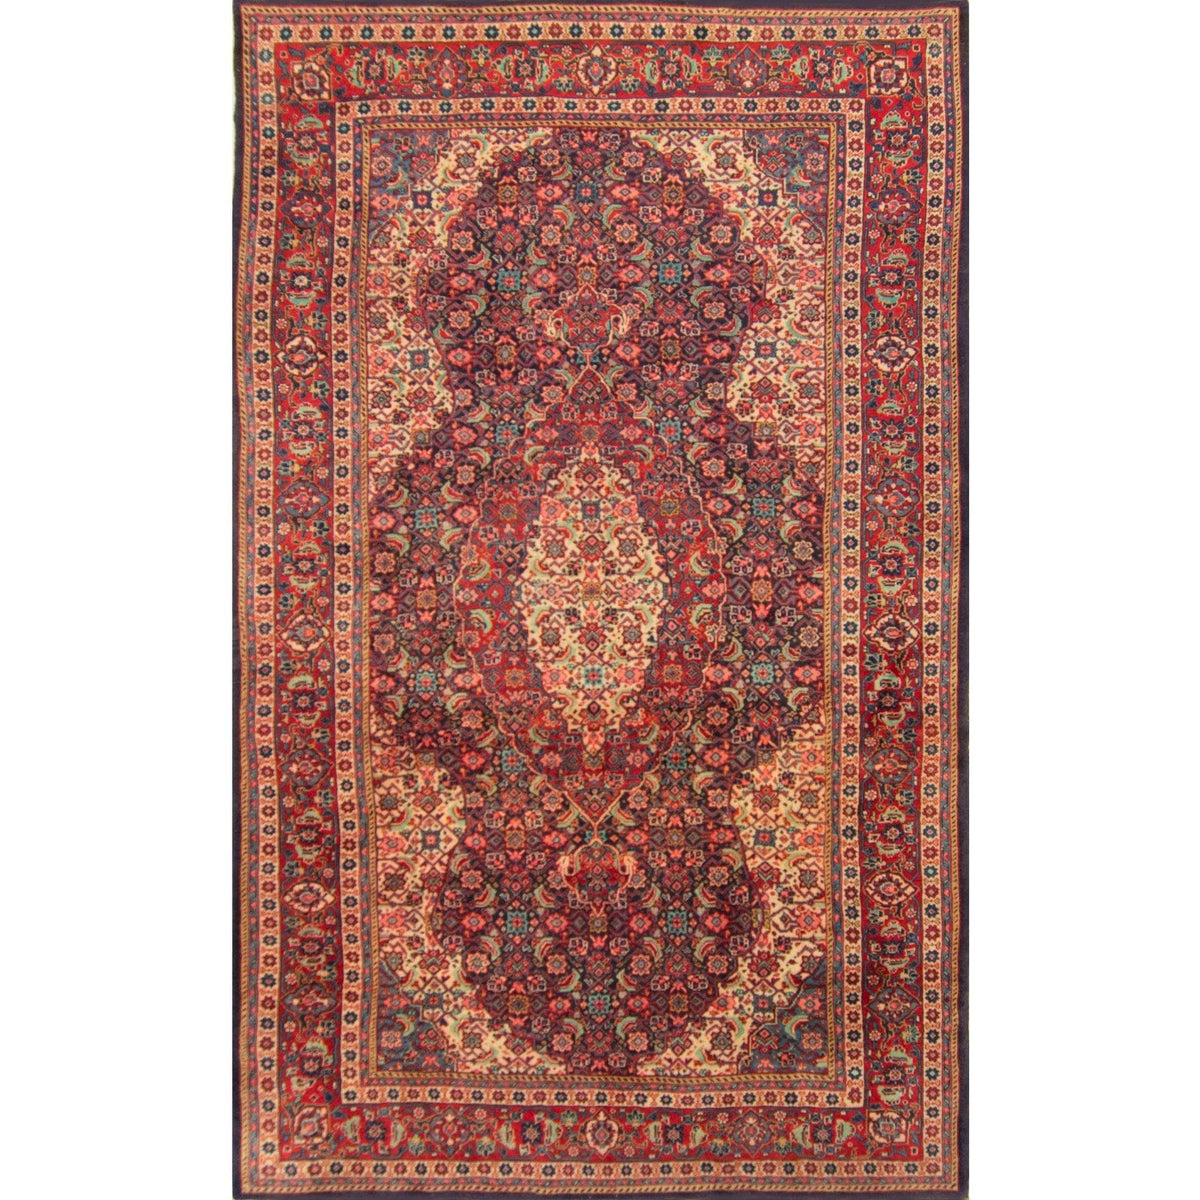 Authentic Hand-knotted Persian Hamadan Rug Persian-Rug | House-of-Haghi | NewMarket | Auckland | NZ | Handmade Persian Rugs | Hand Knotted Persian Rugs